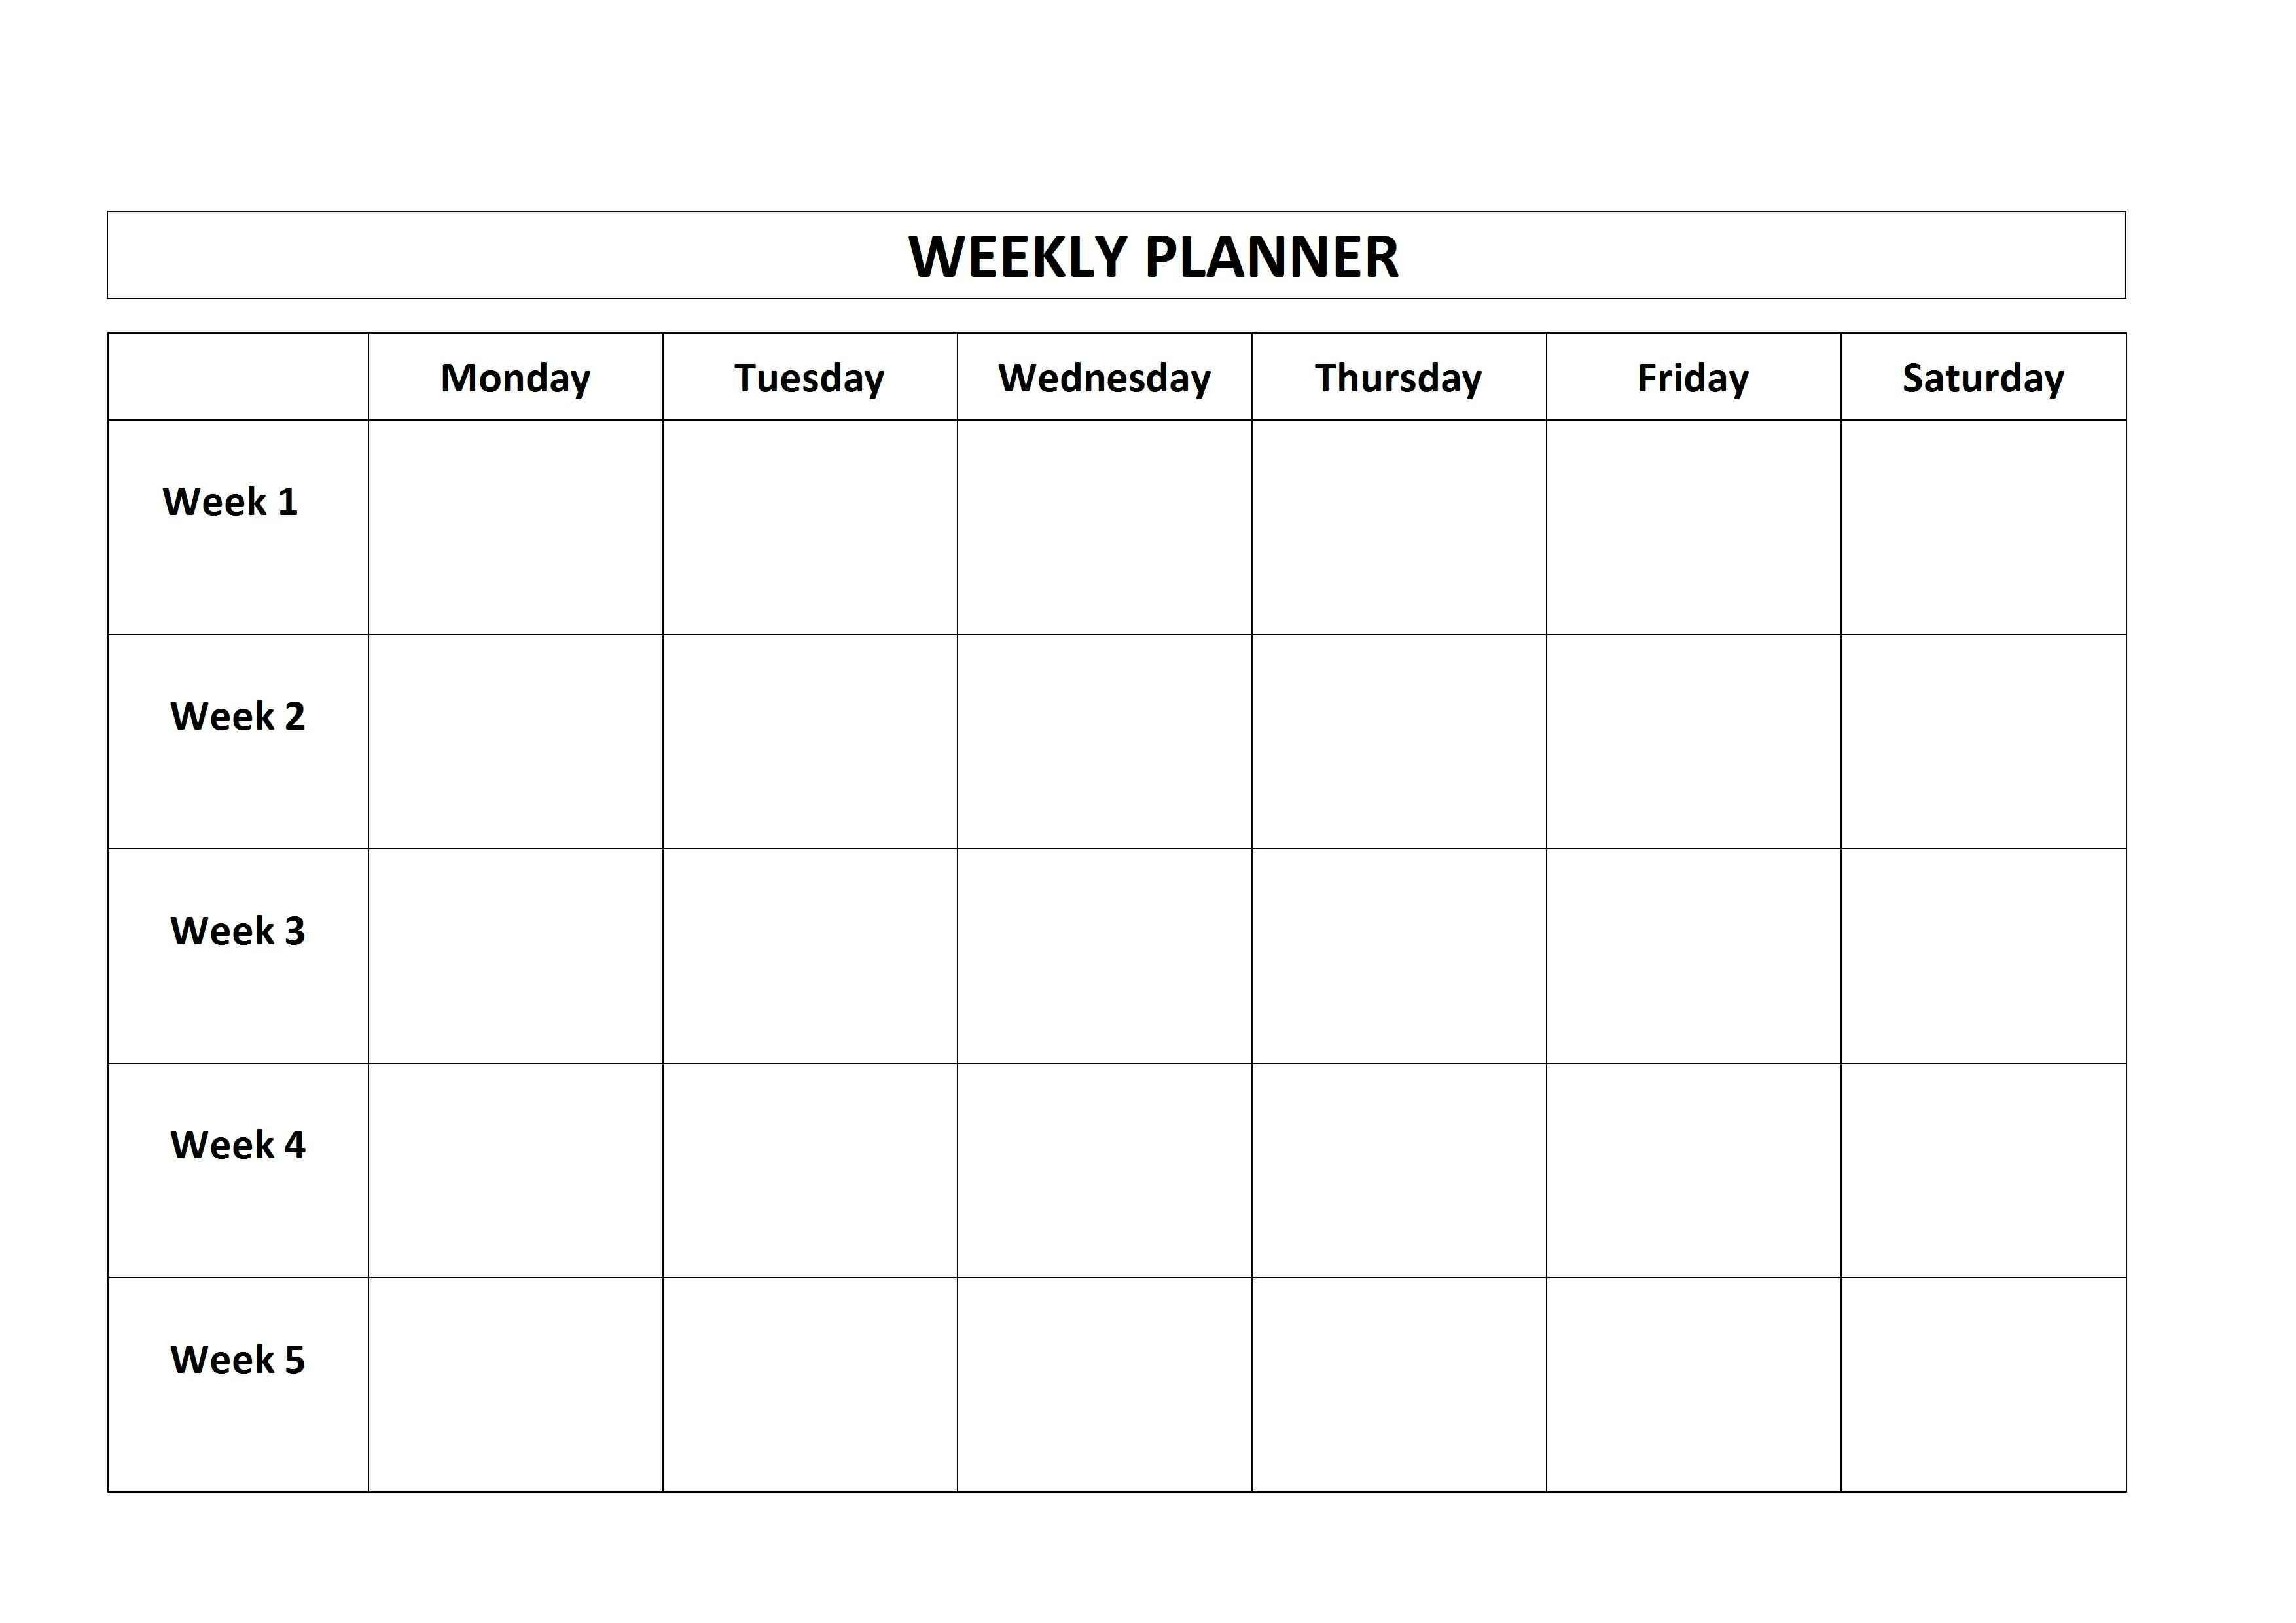 Free Printable Weekly Planner Monday Friday School Calendar-Blank Calendar Page Monday To Friday